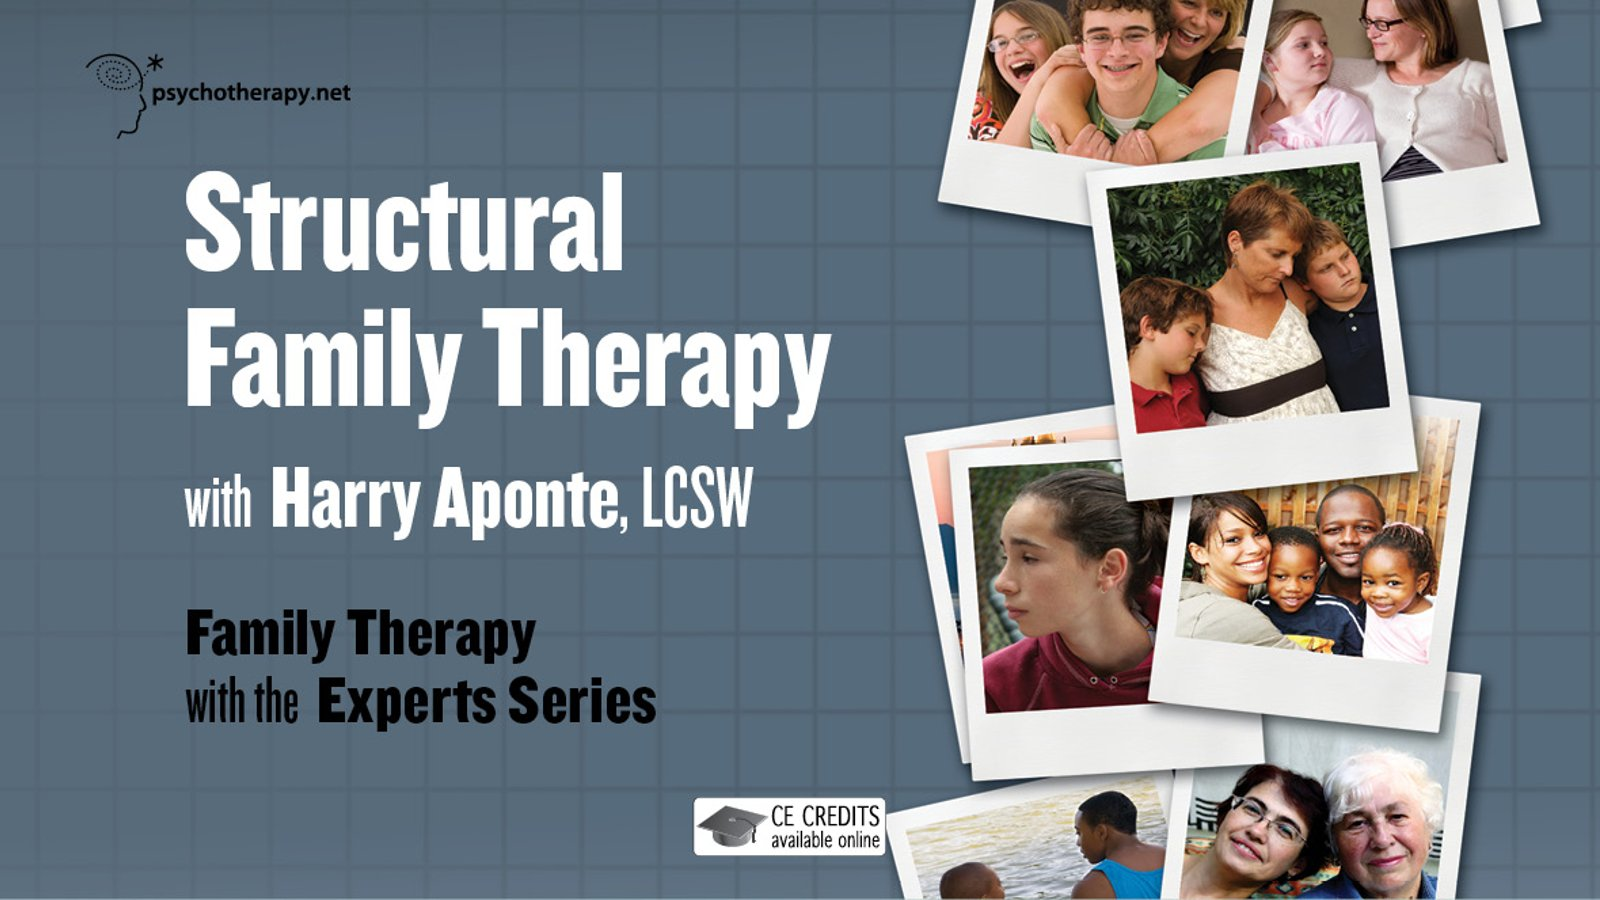 Structural Family Therapy - With Harry Aponte